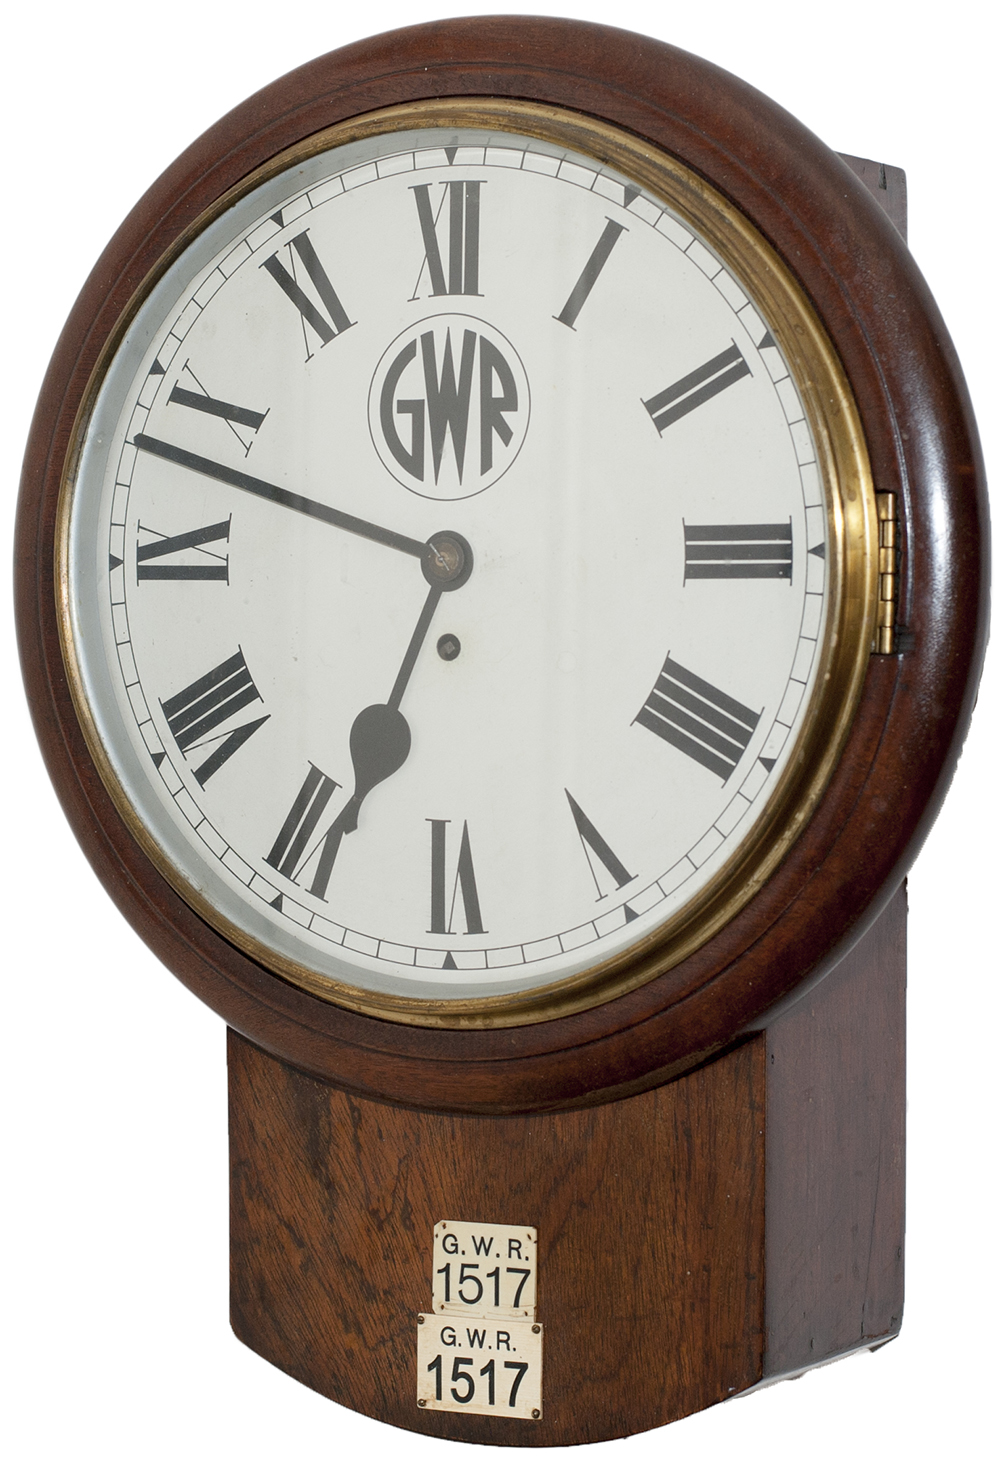 Lot 61 - Great Western Railway 12 inch mahogany cased drop dial fusee railway clock with a rectangular plated